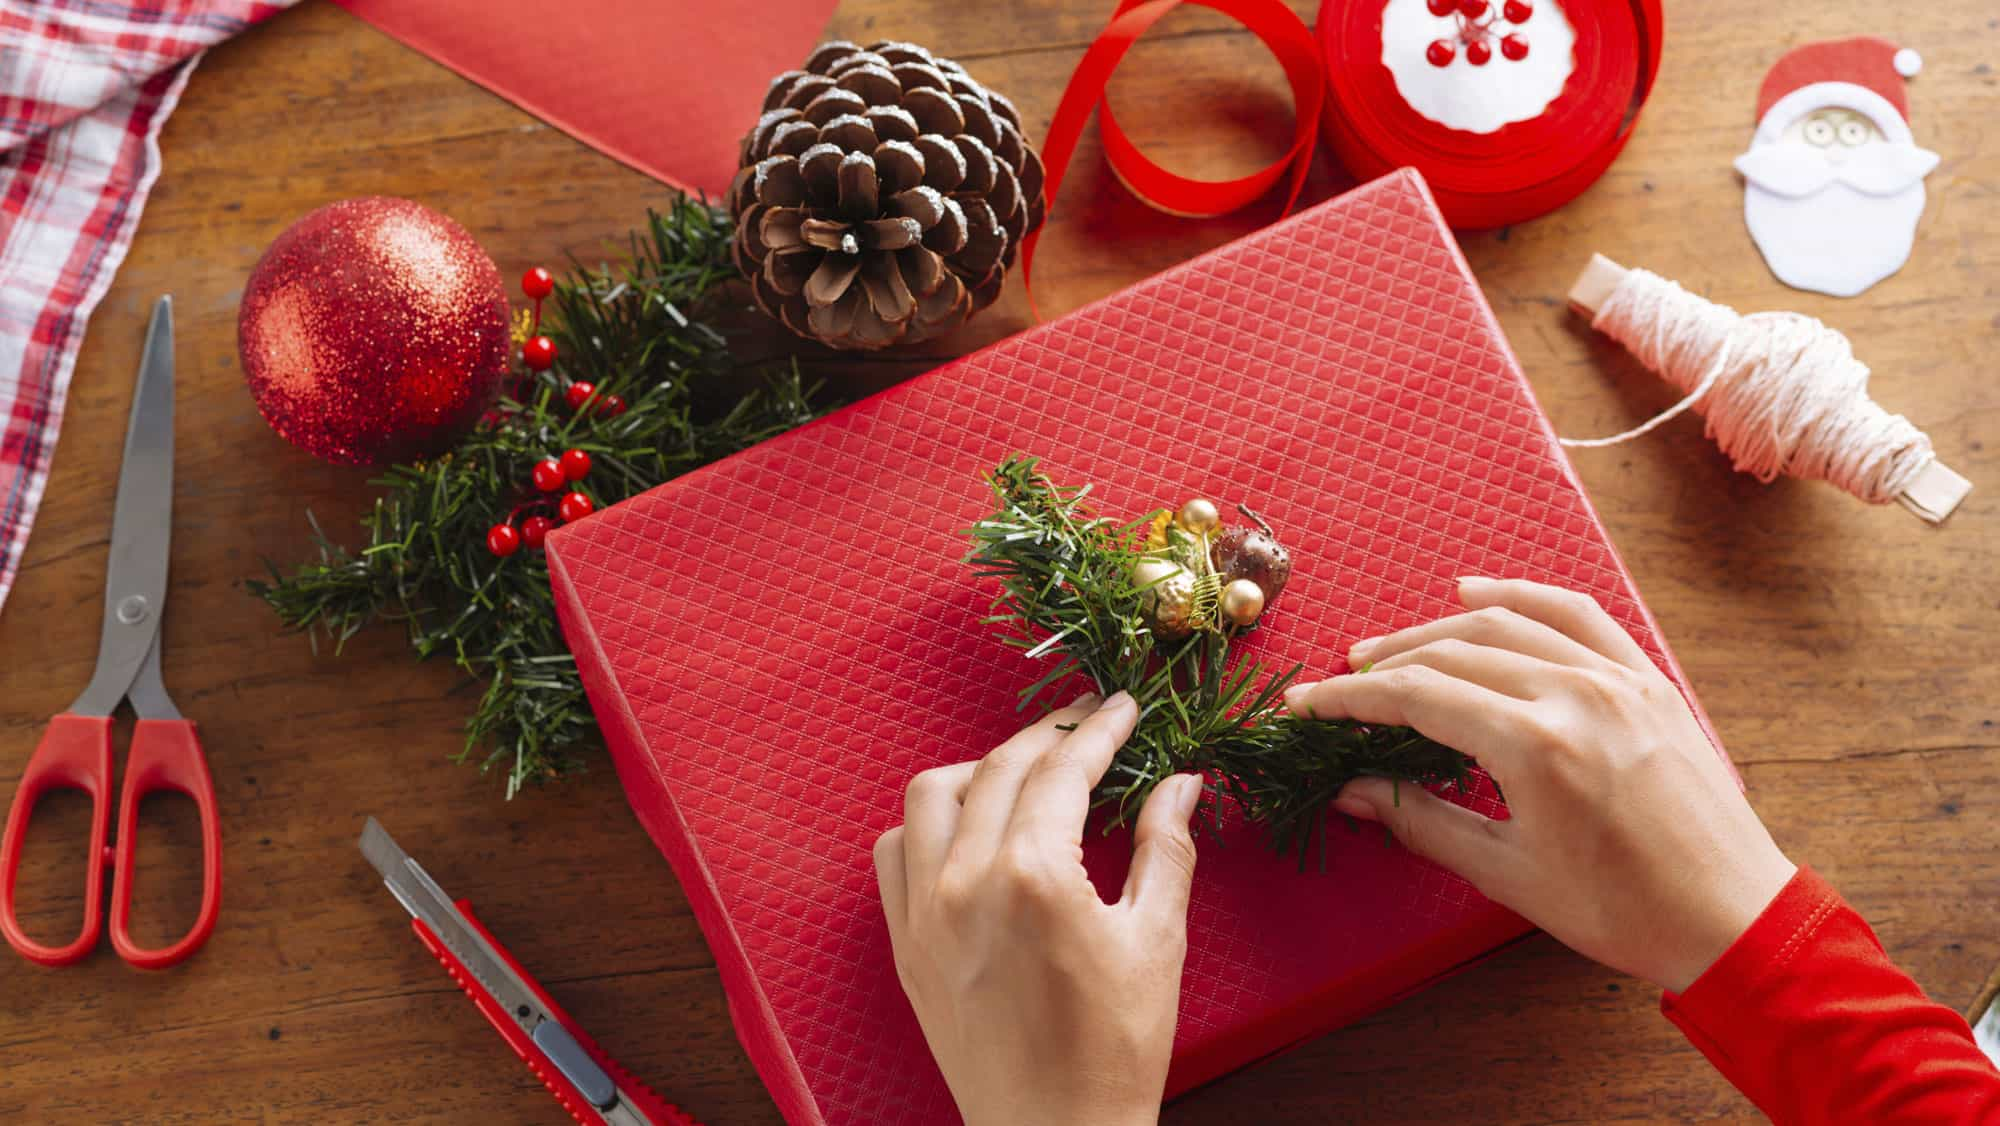 Christmas Gift Giving Images.Gift Giving Can Be Fun What Is The Wackiest Gift You Ever